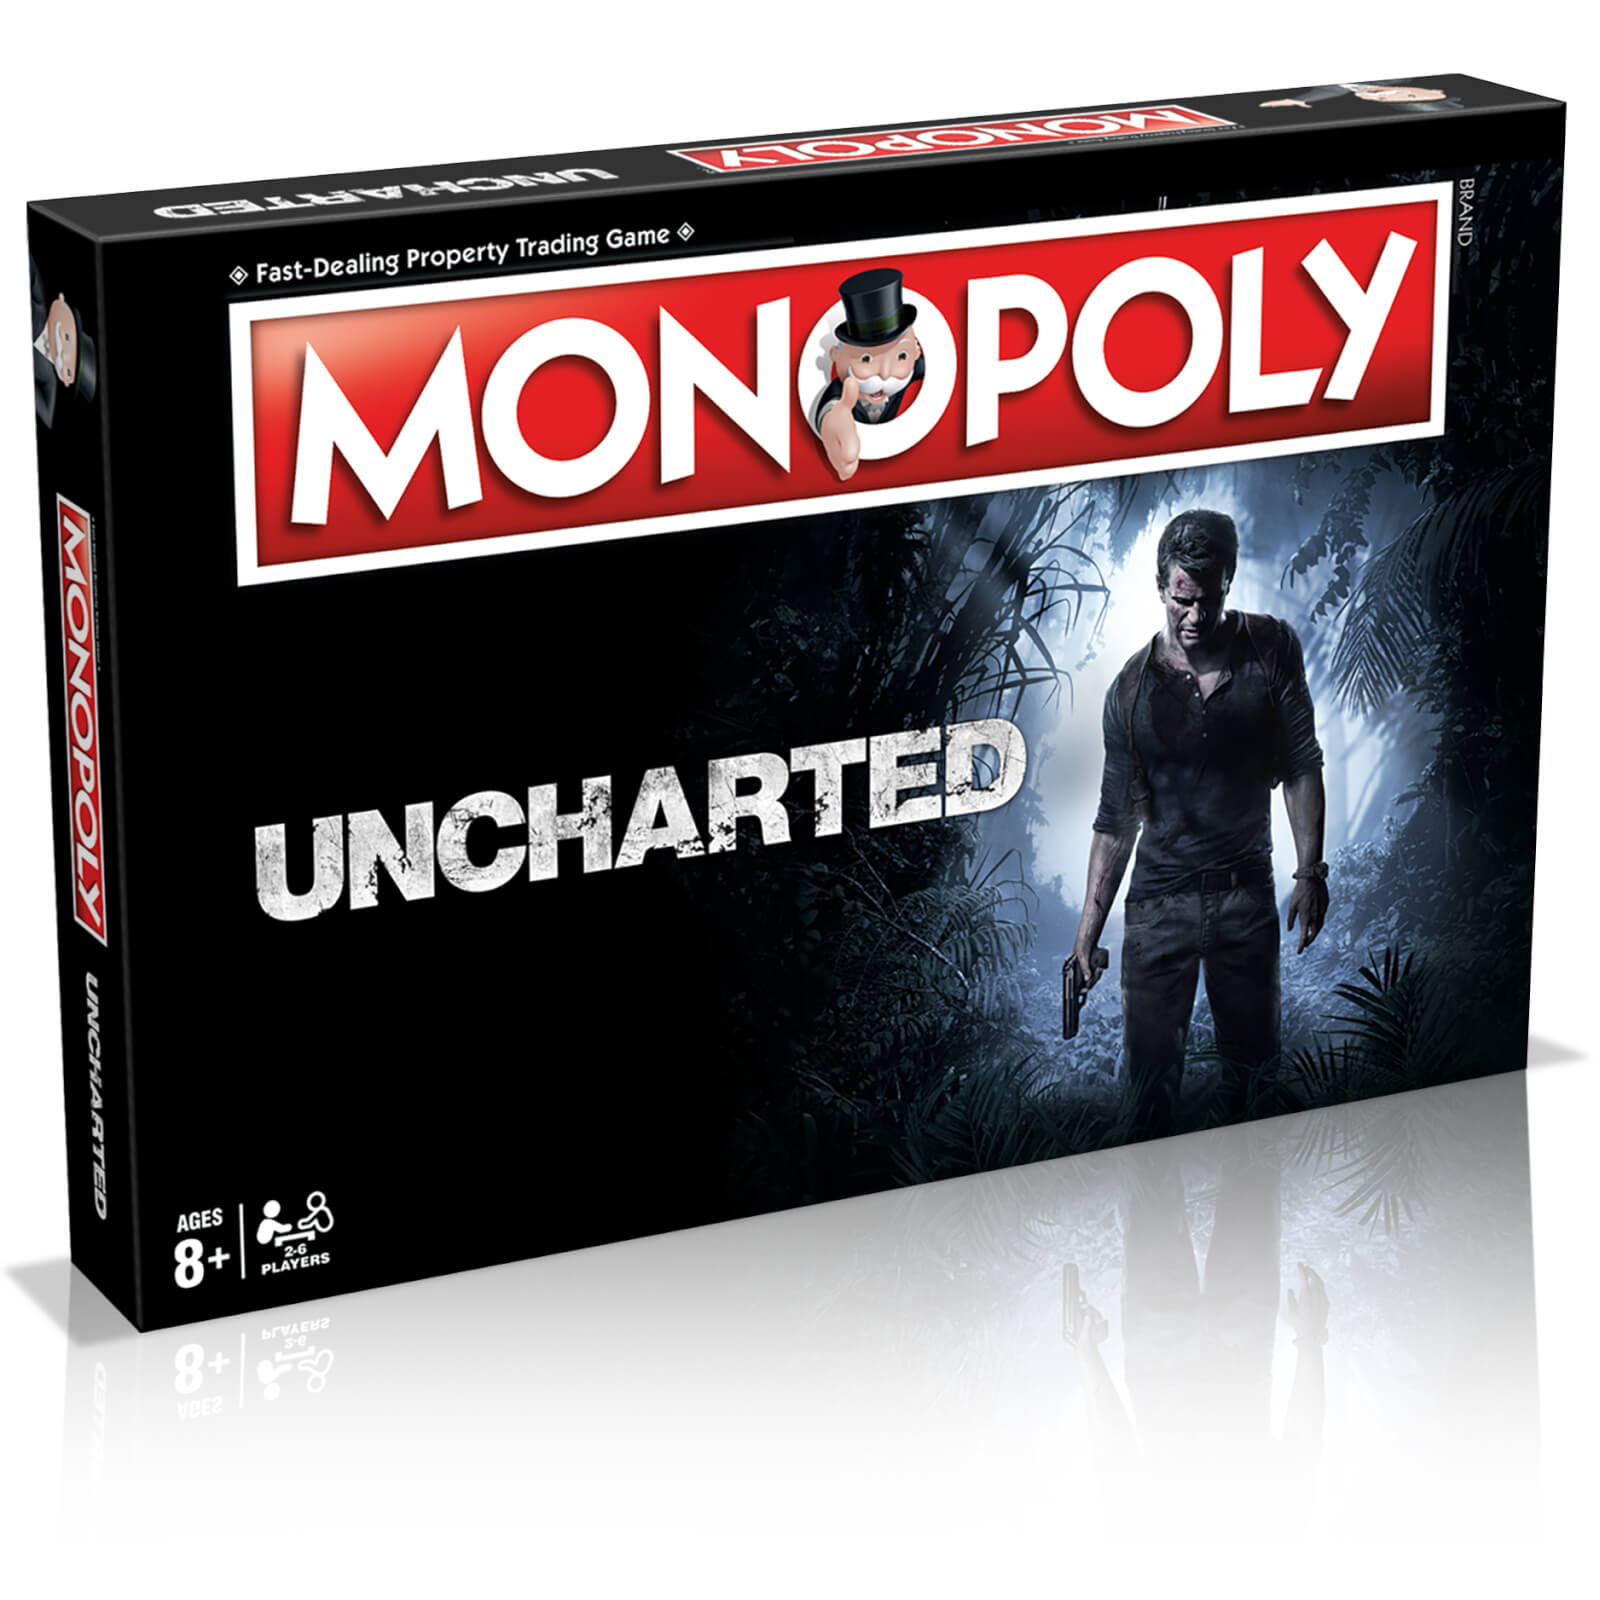 Image of Monopoly Board Game - Uncharted Edition